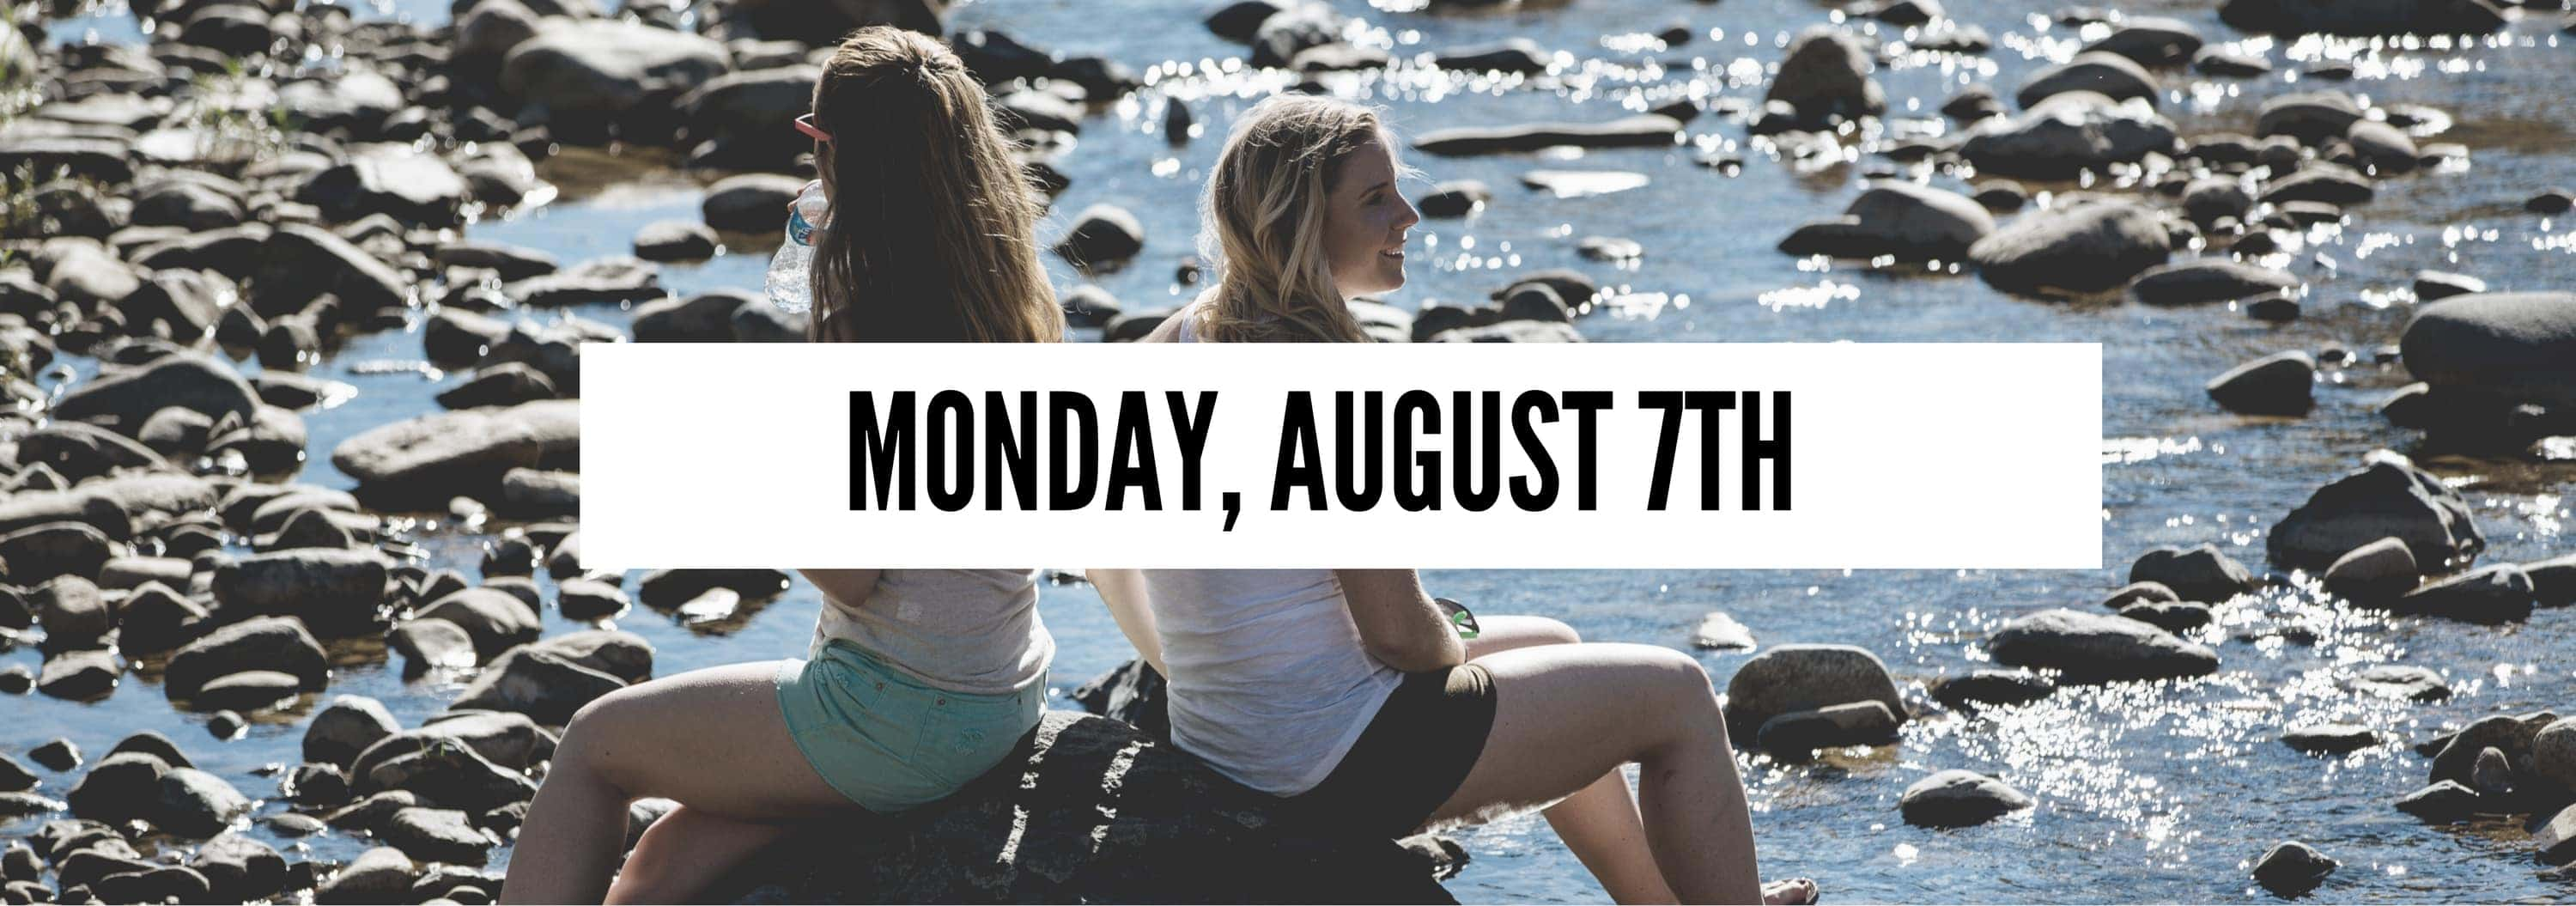 Monday August 7th (2)